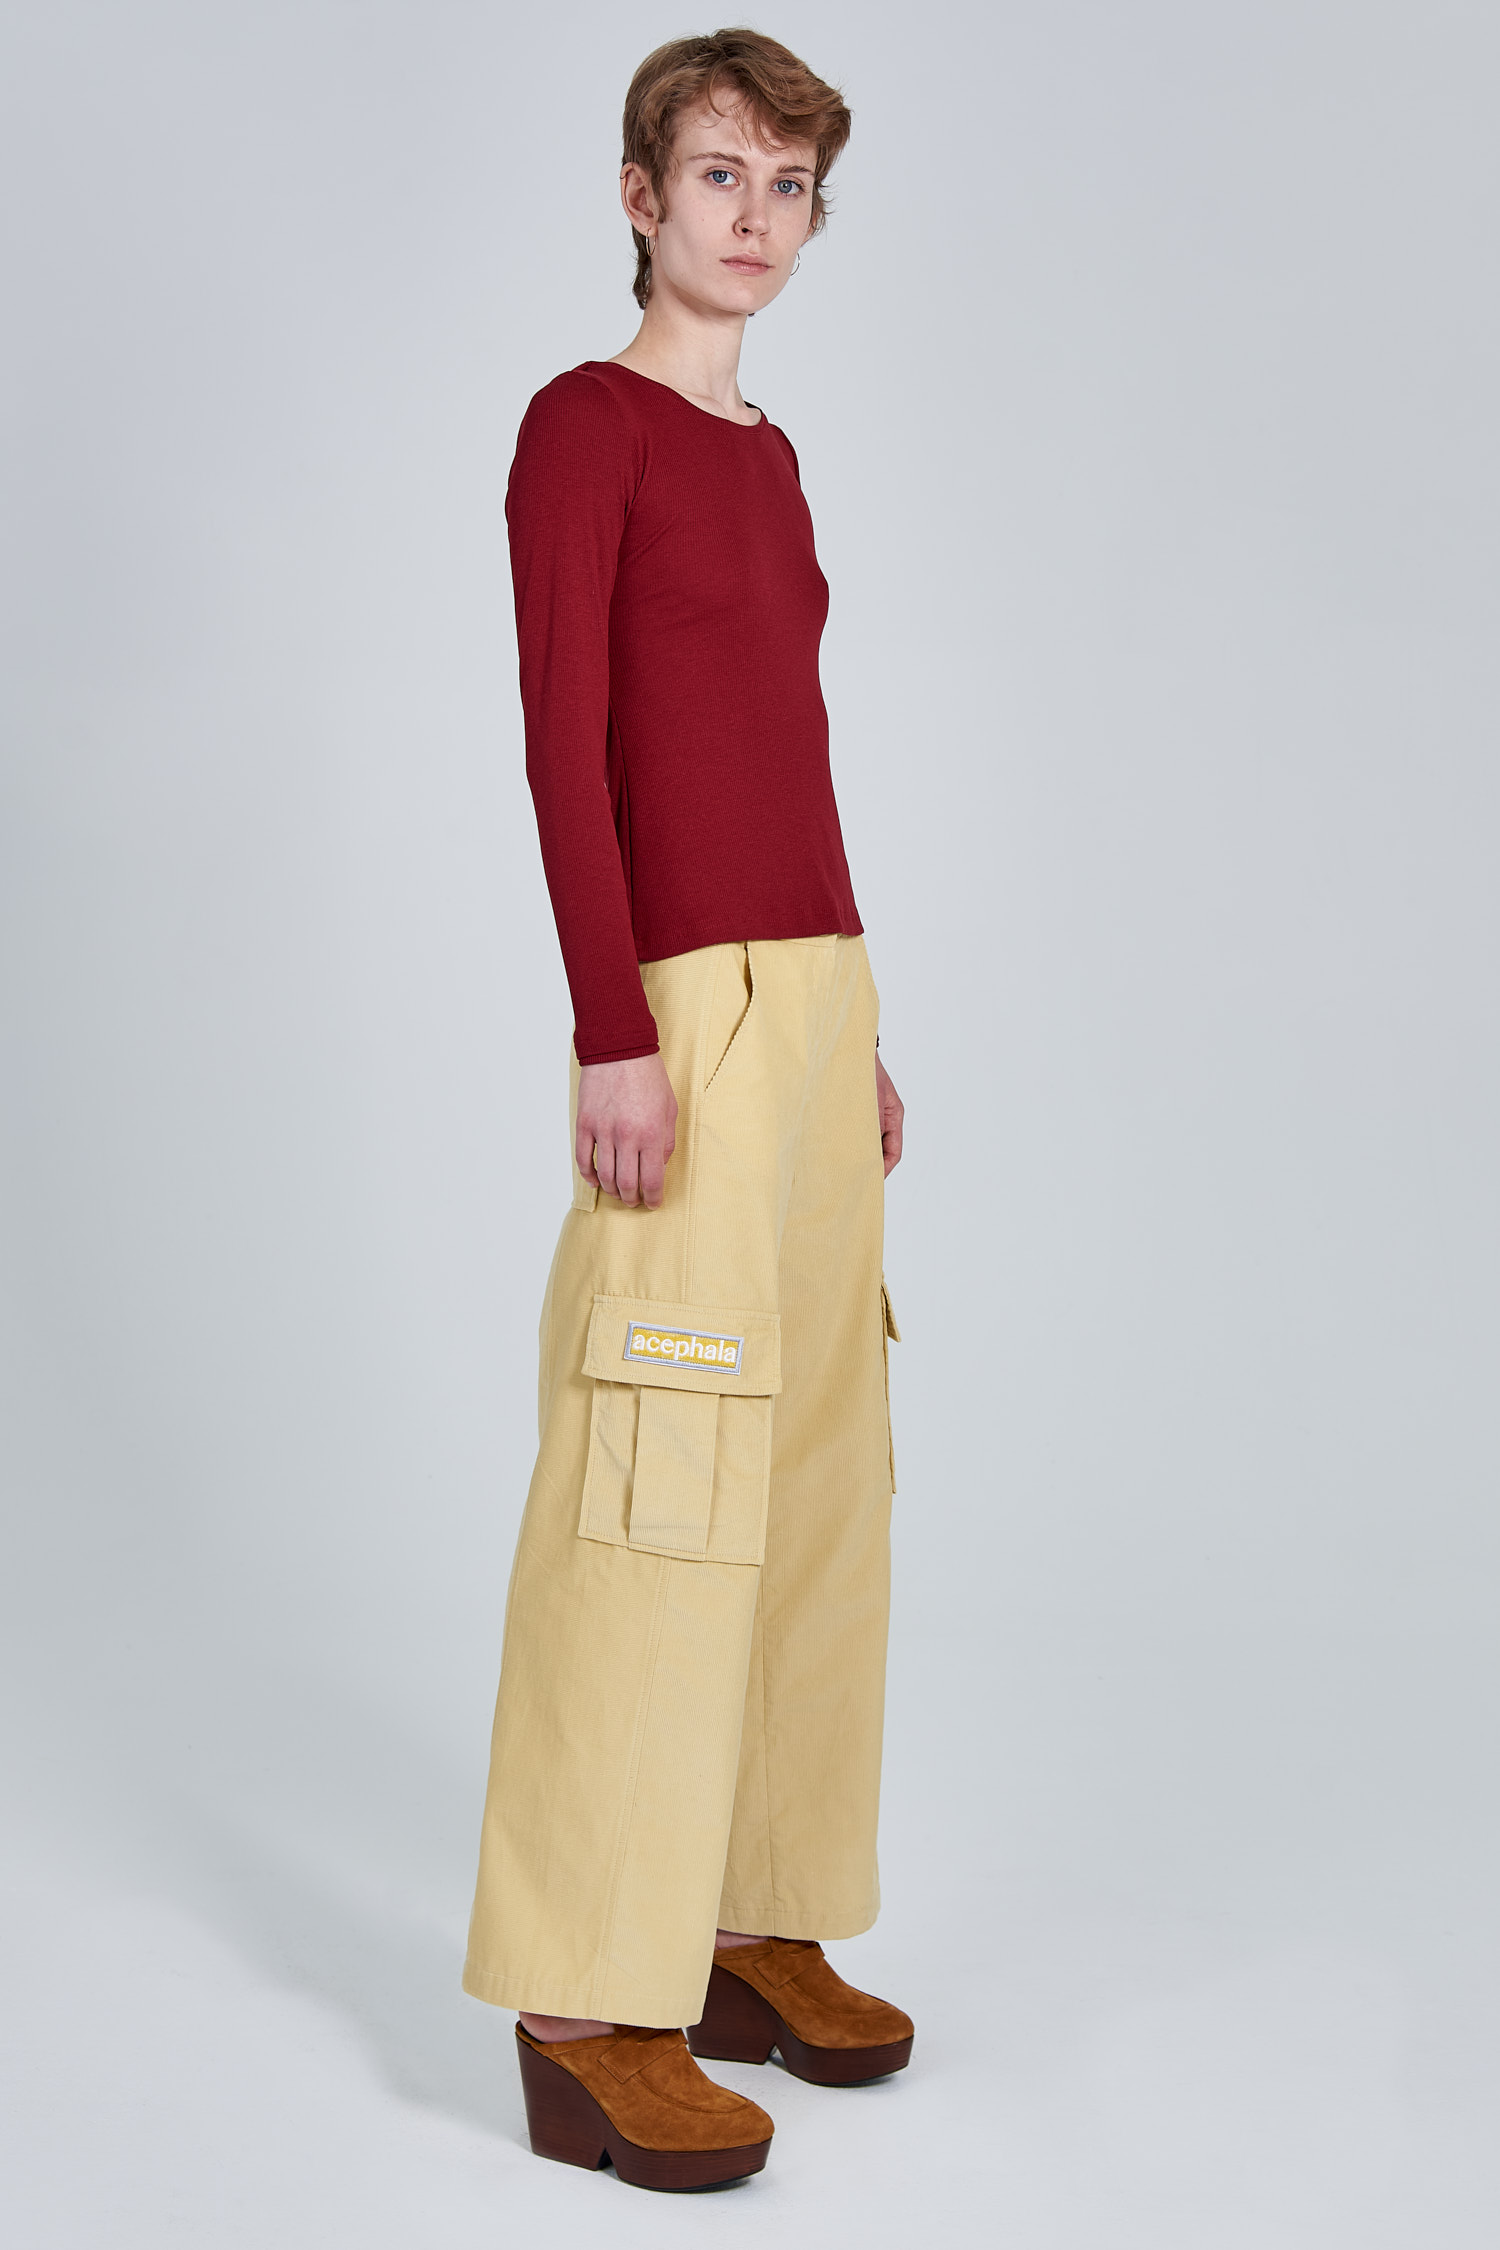 Acephala Fw 2020 21 Red Longsleeve Corduroy Trousers Female Side Right